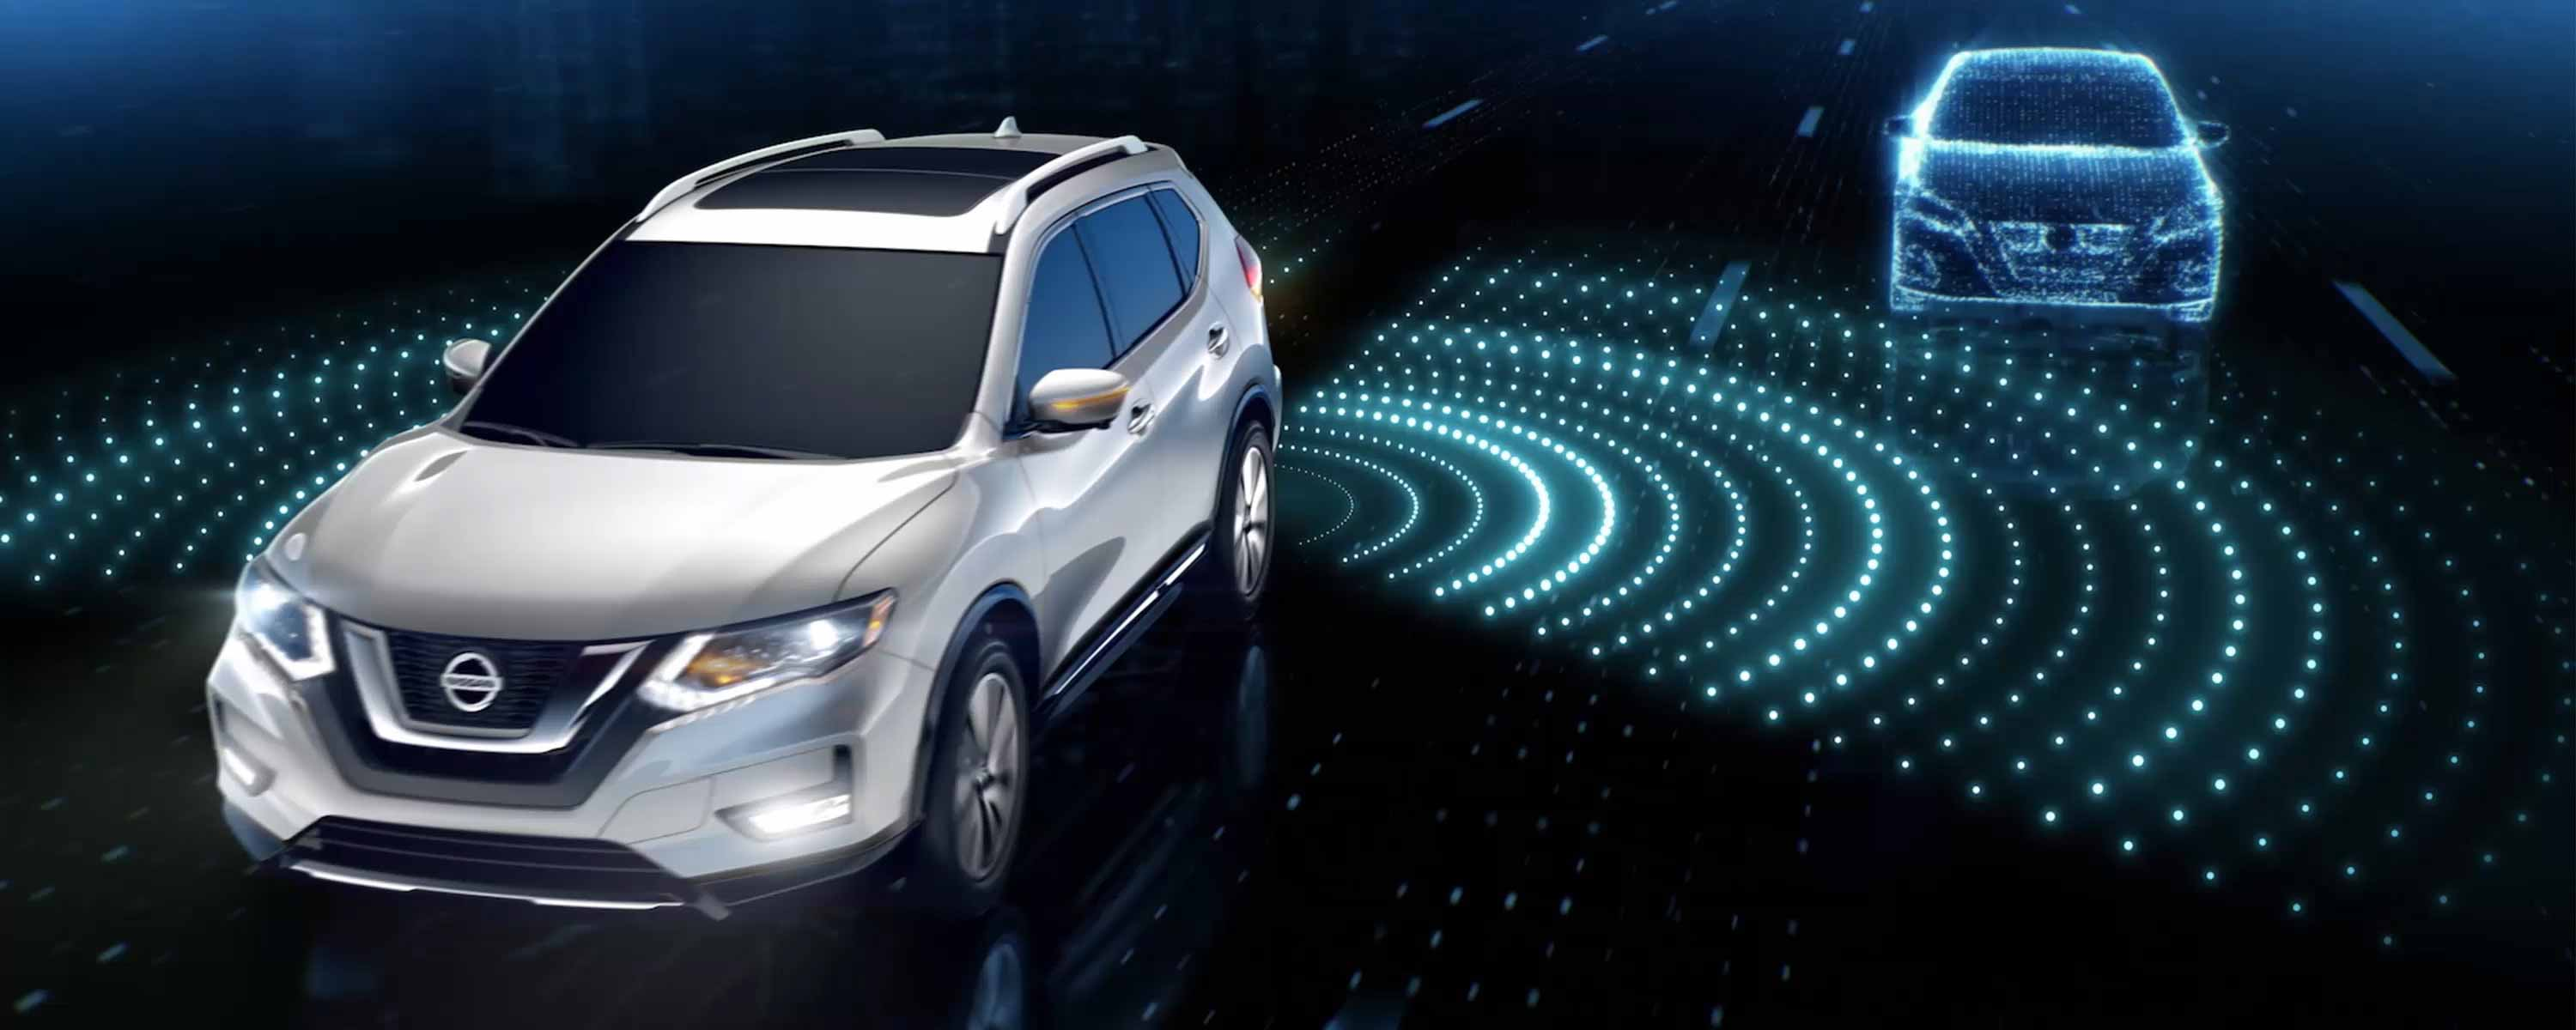 Nissan Intelligent Driving video